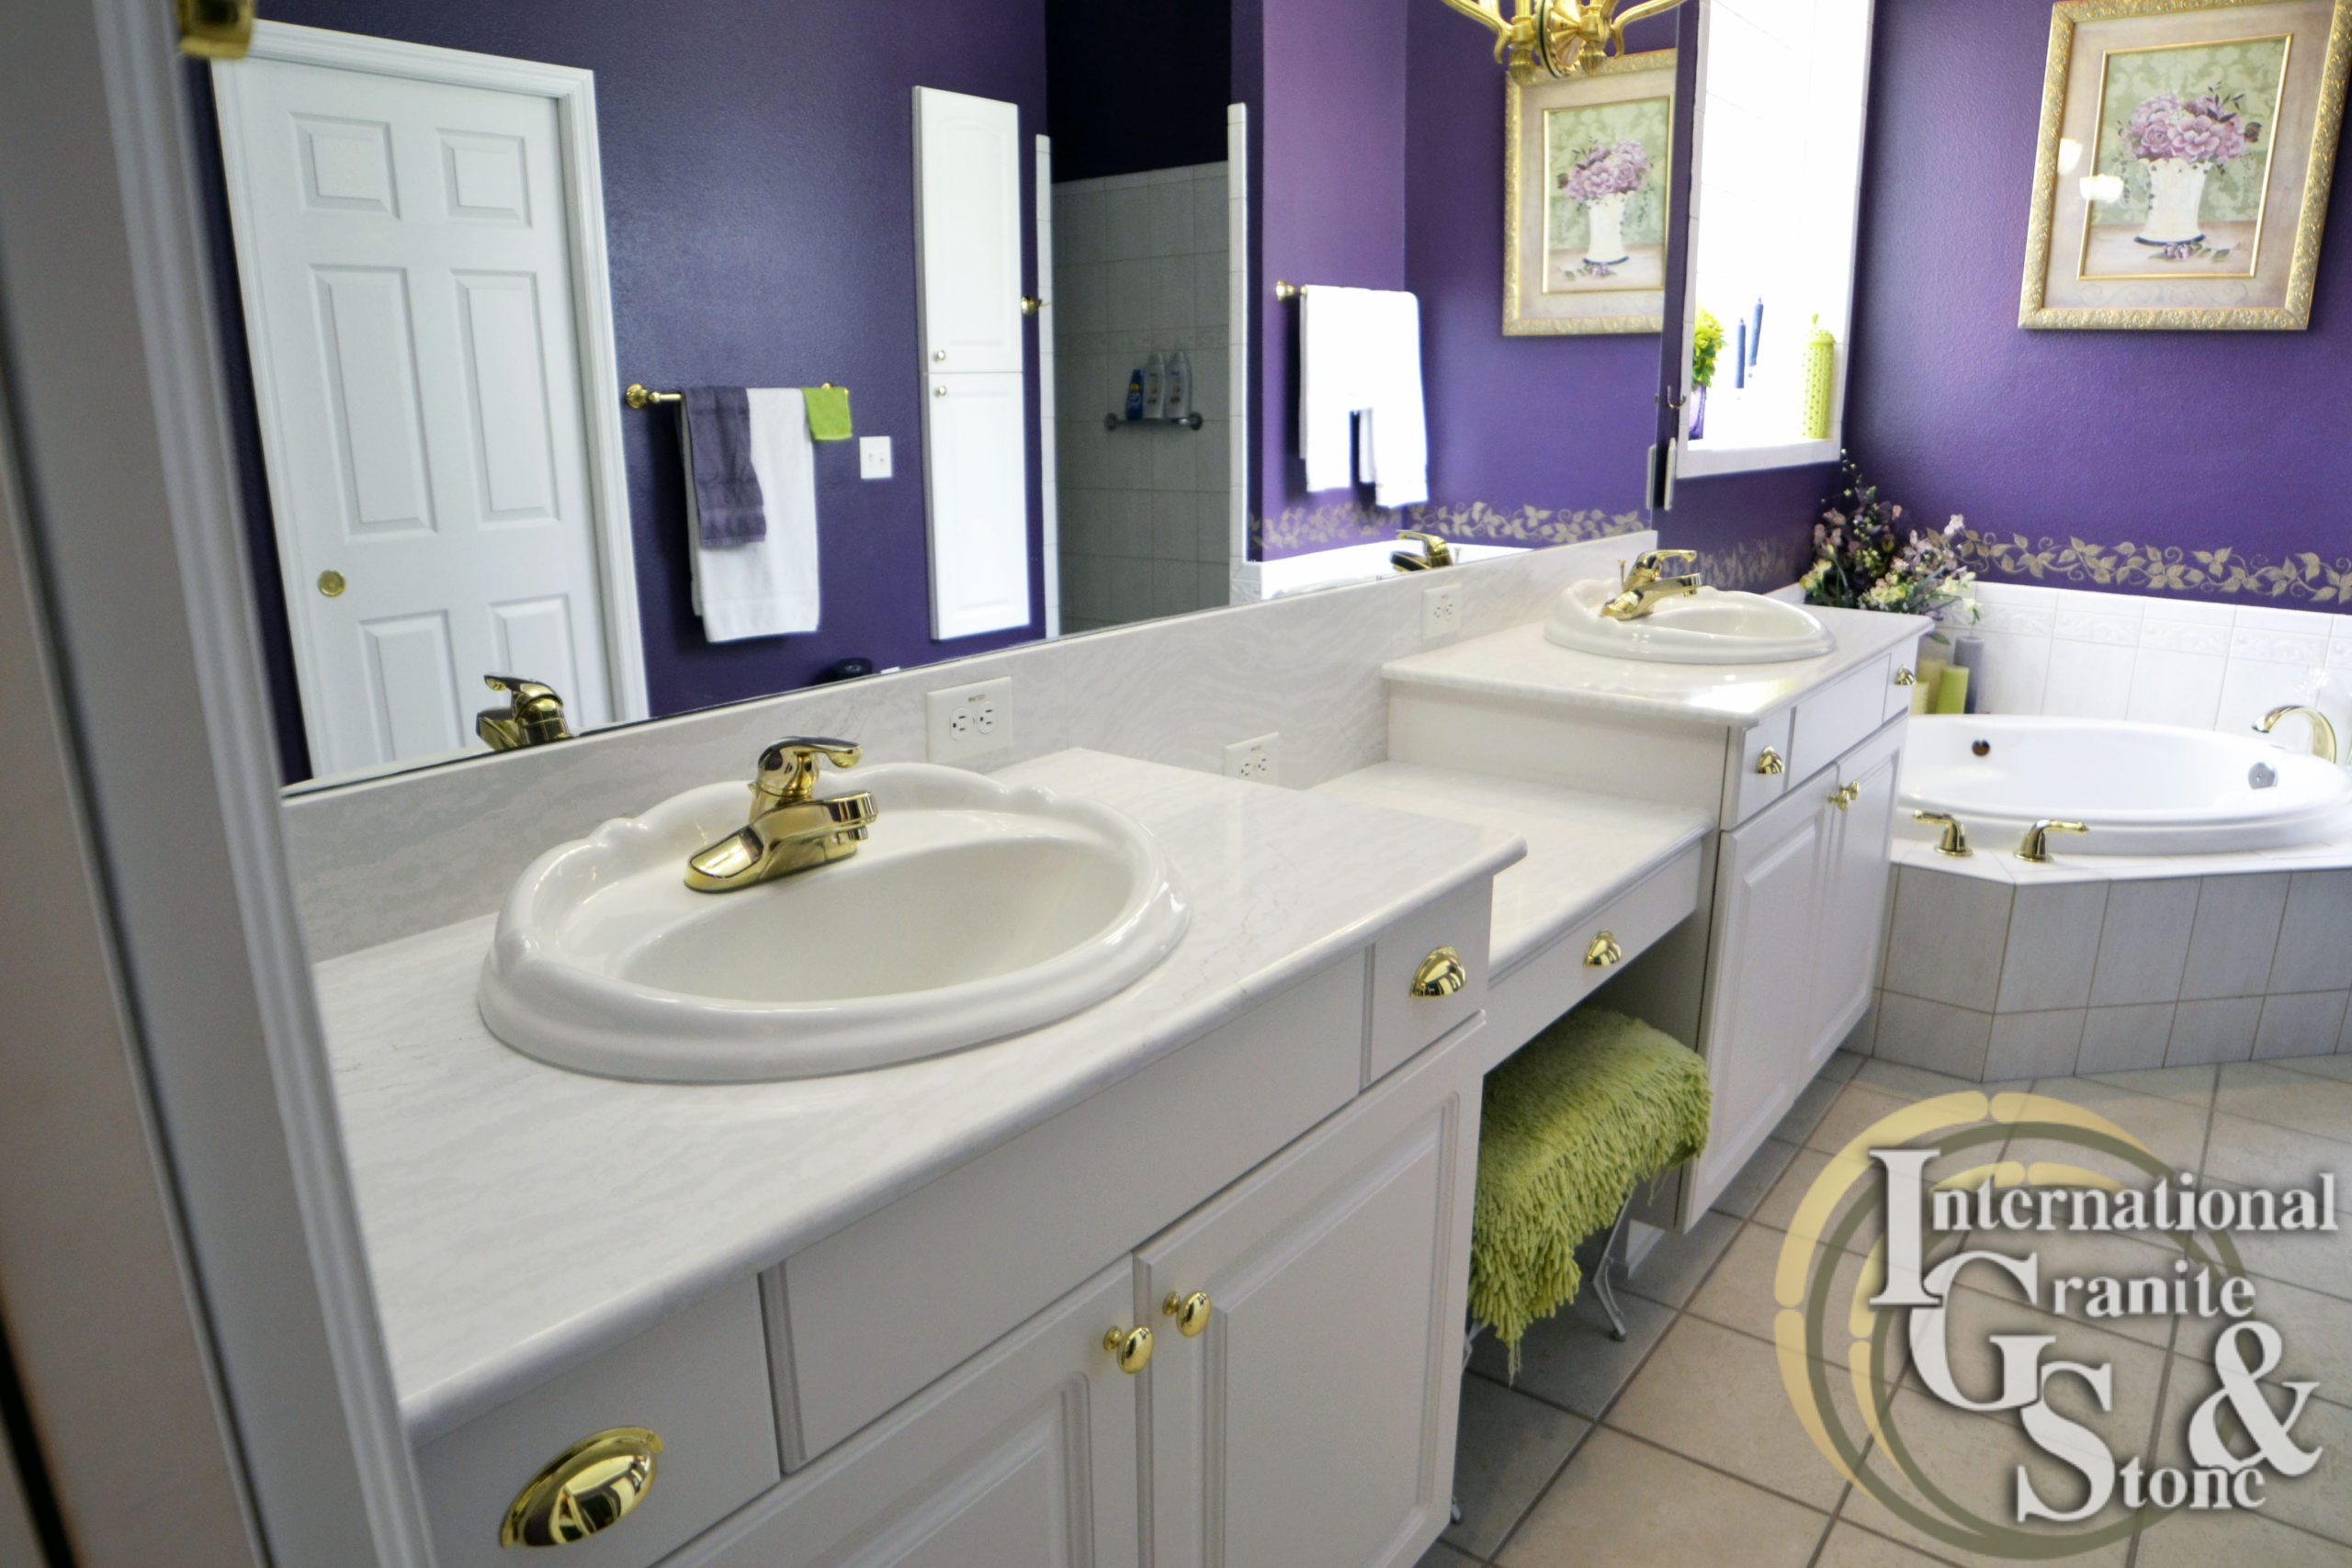 Double Sink Cambria Delgatie Countertops in Bathroom with White Cabinets